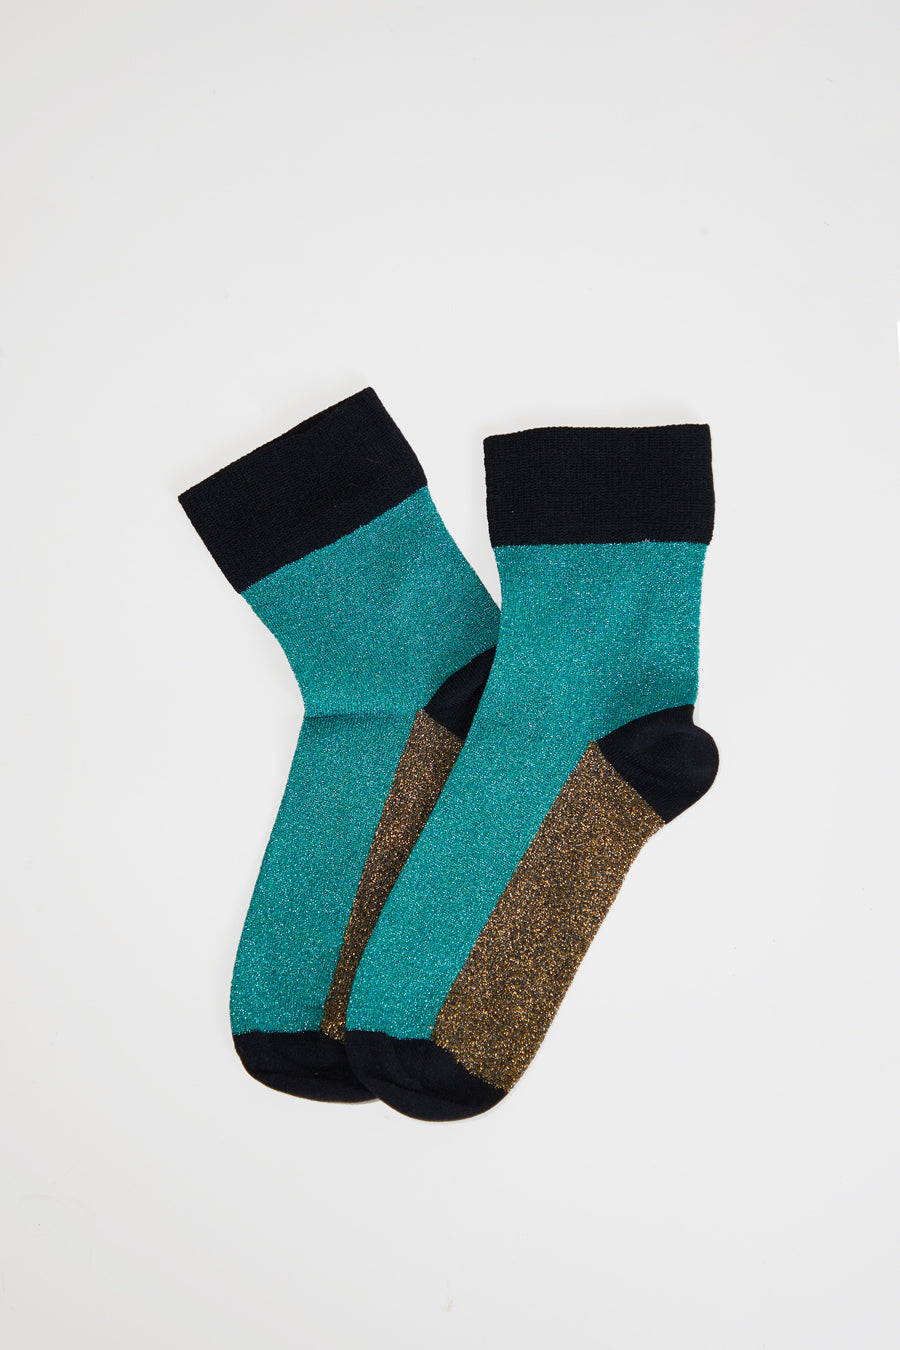 Polder Arcando Colorblock Socks in Aqua